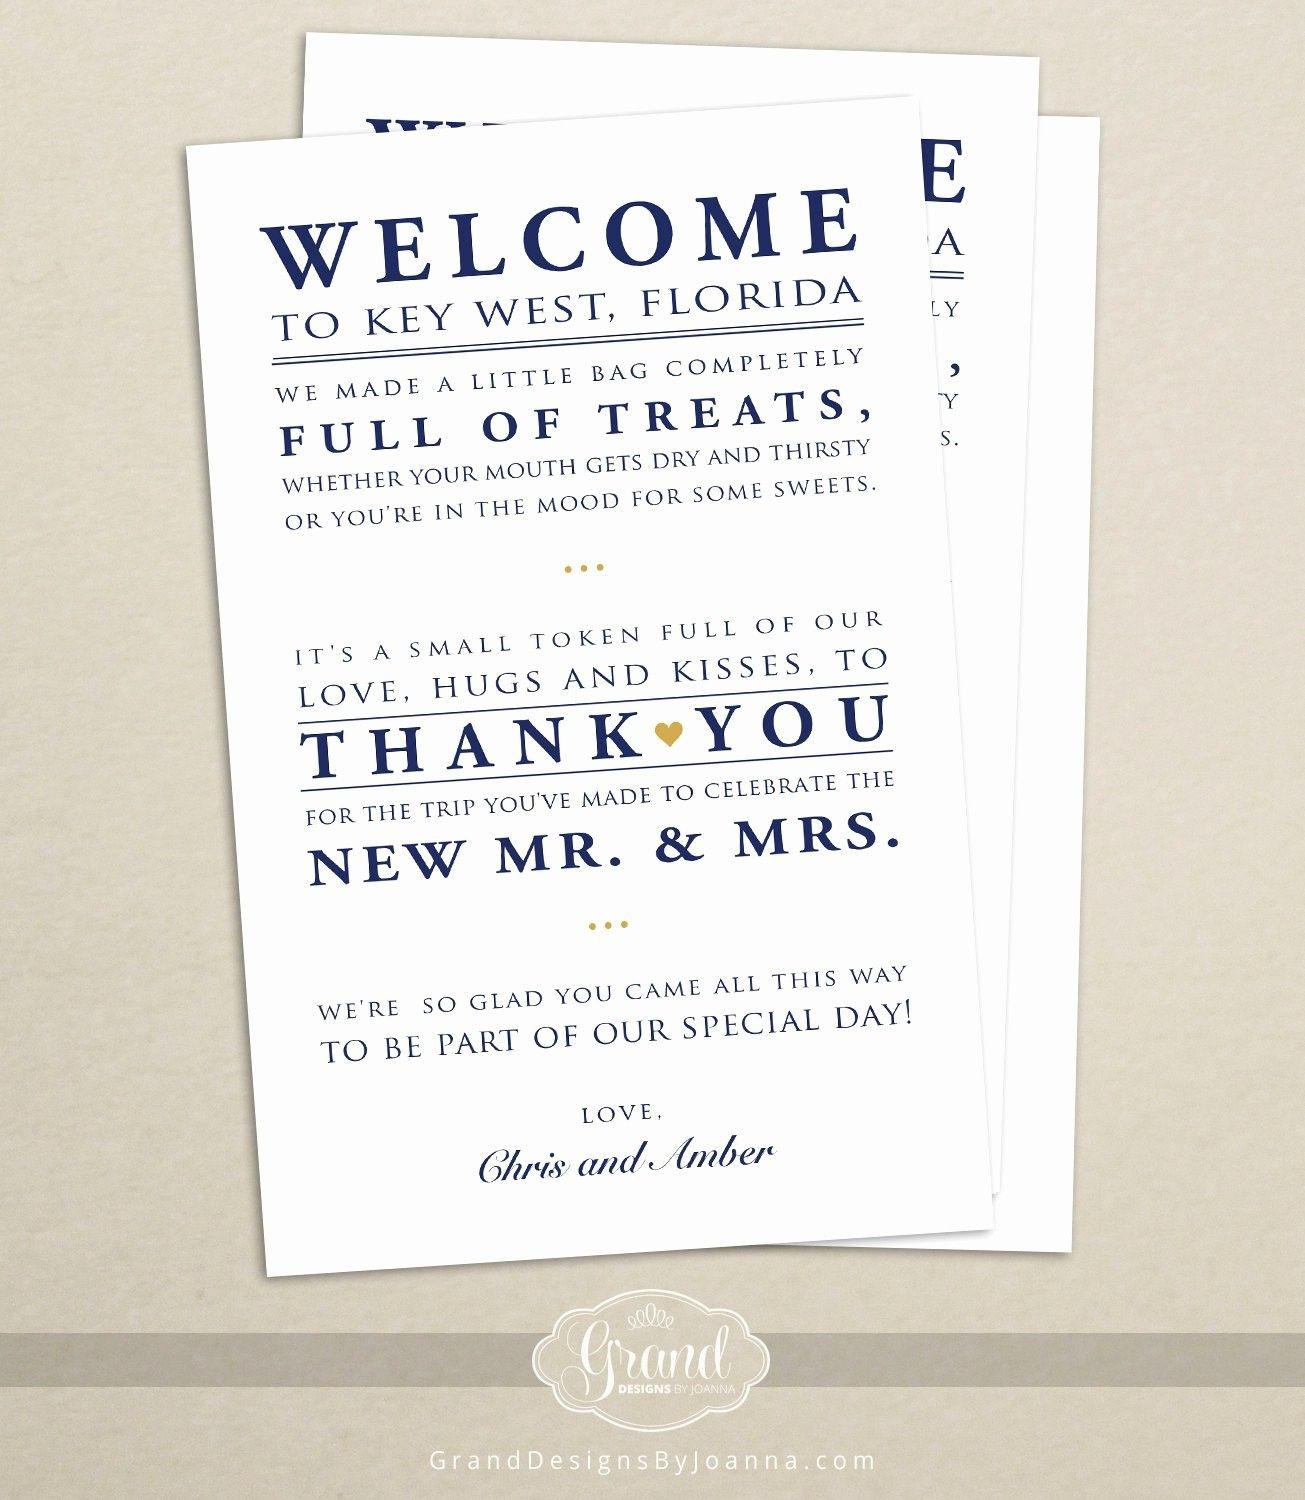 009 Stunning Wedding Guest Welcome Letter Template High Resolution Full